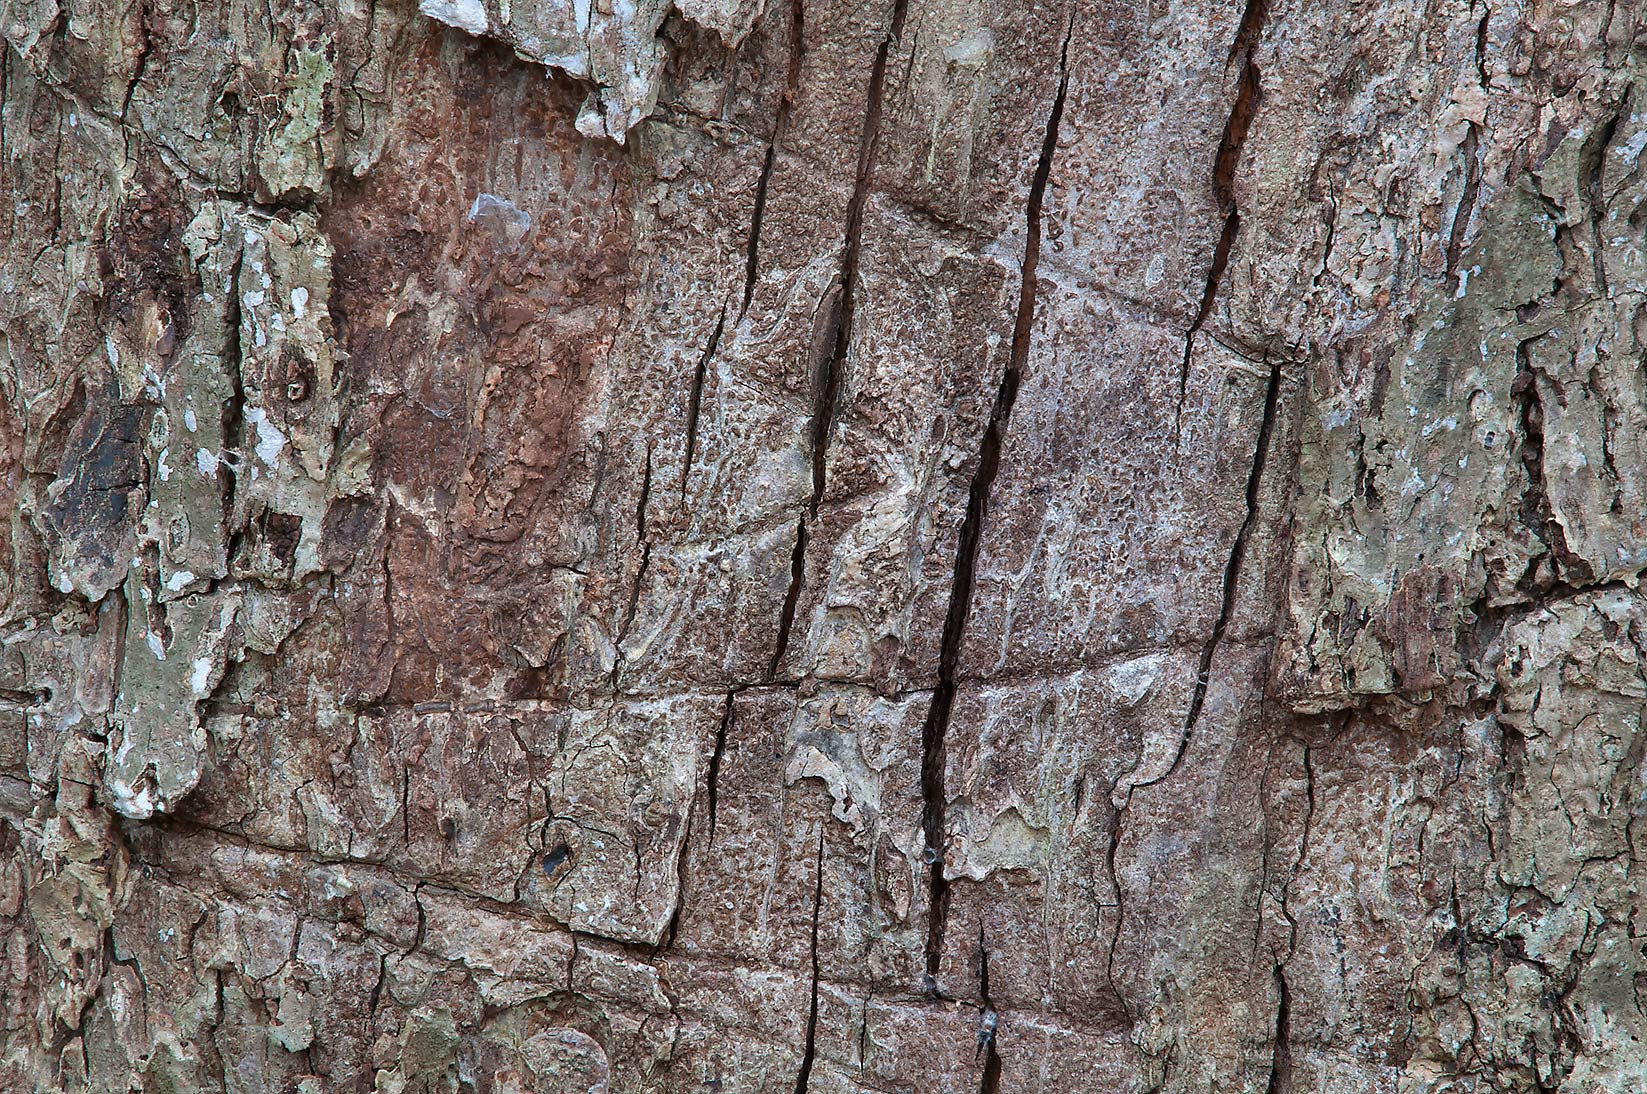 Texture of tree bark in Lick Creek Park. College Station, Texas